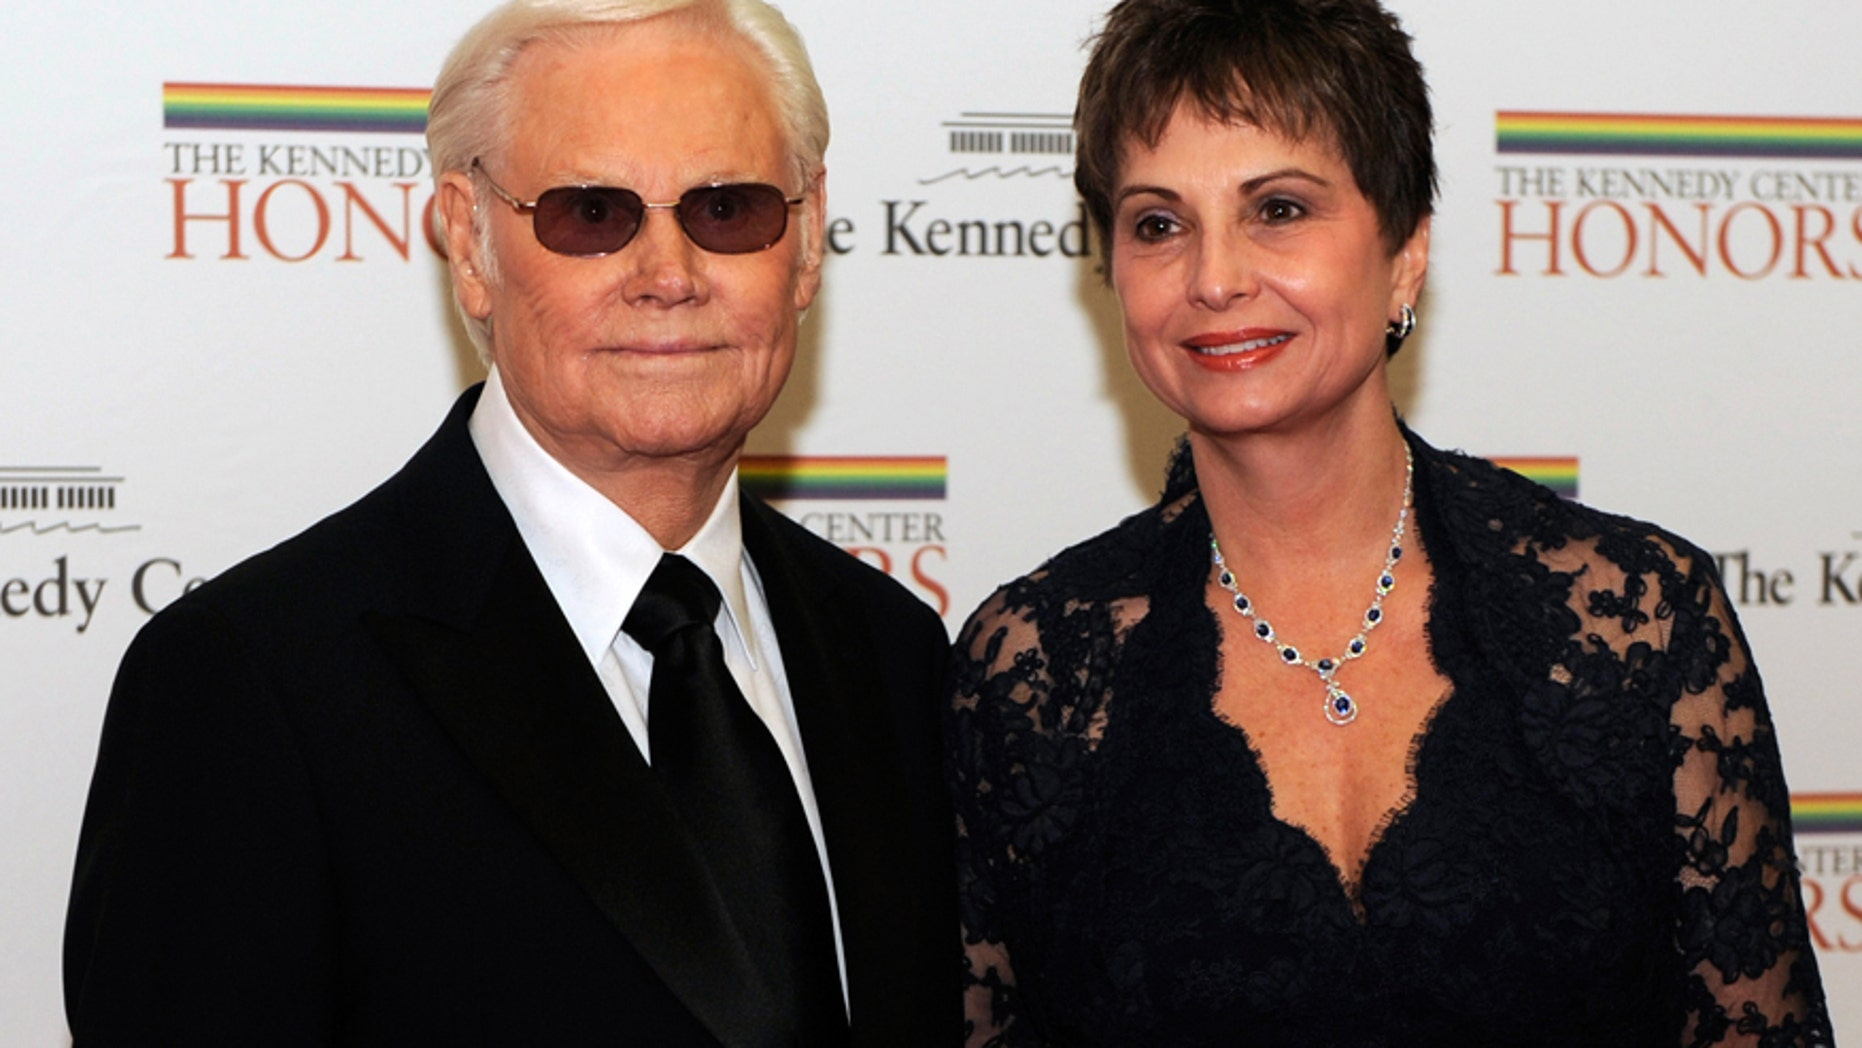 Country singer George Jones (L), a 2008 Kennedy Center Honoree, poses for photographers with his wife Nancy as they arrive for the 2008 Honors gala dinner at the US State Department in Washington December 6, 2008.